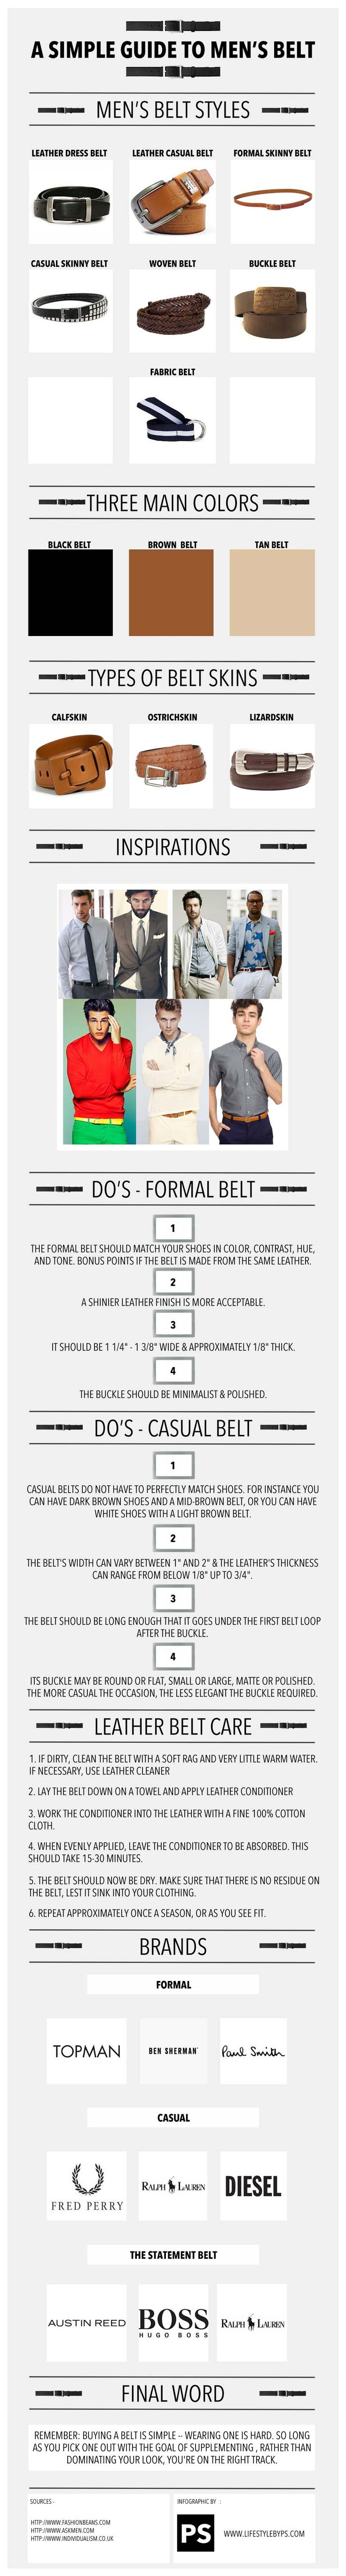 A Simple Guide to Men's Belt #Infographic #Fashion #Men'sBelt #MenFashion